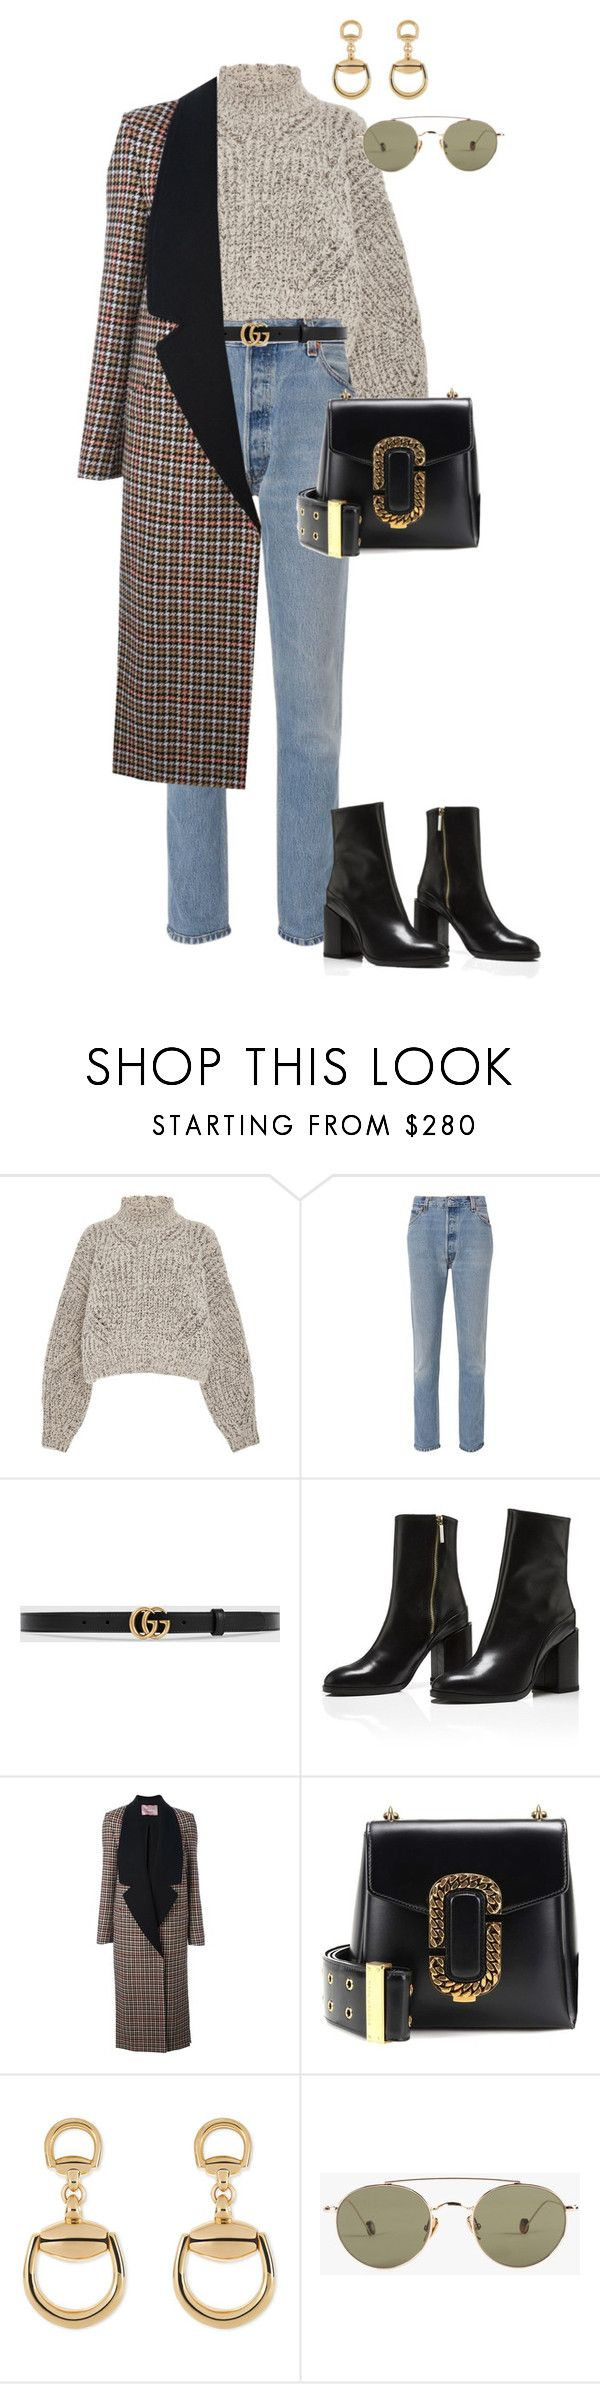 """""""Untitled #4425"""" by lily-tubman ❤ liked on Polyvore featuring Isabel Marant, RE/DONE, Gucci, Lanvin, Marc Jacobs and Ahlem"""